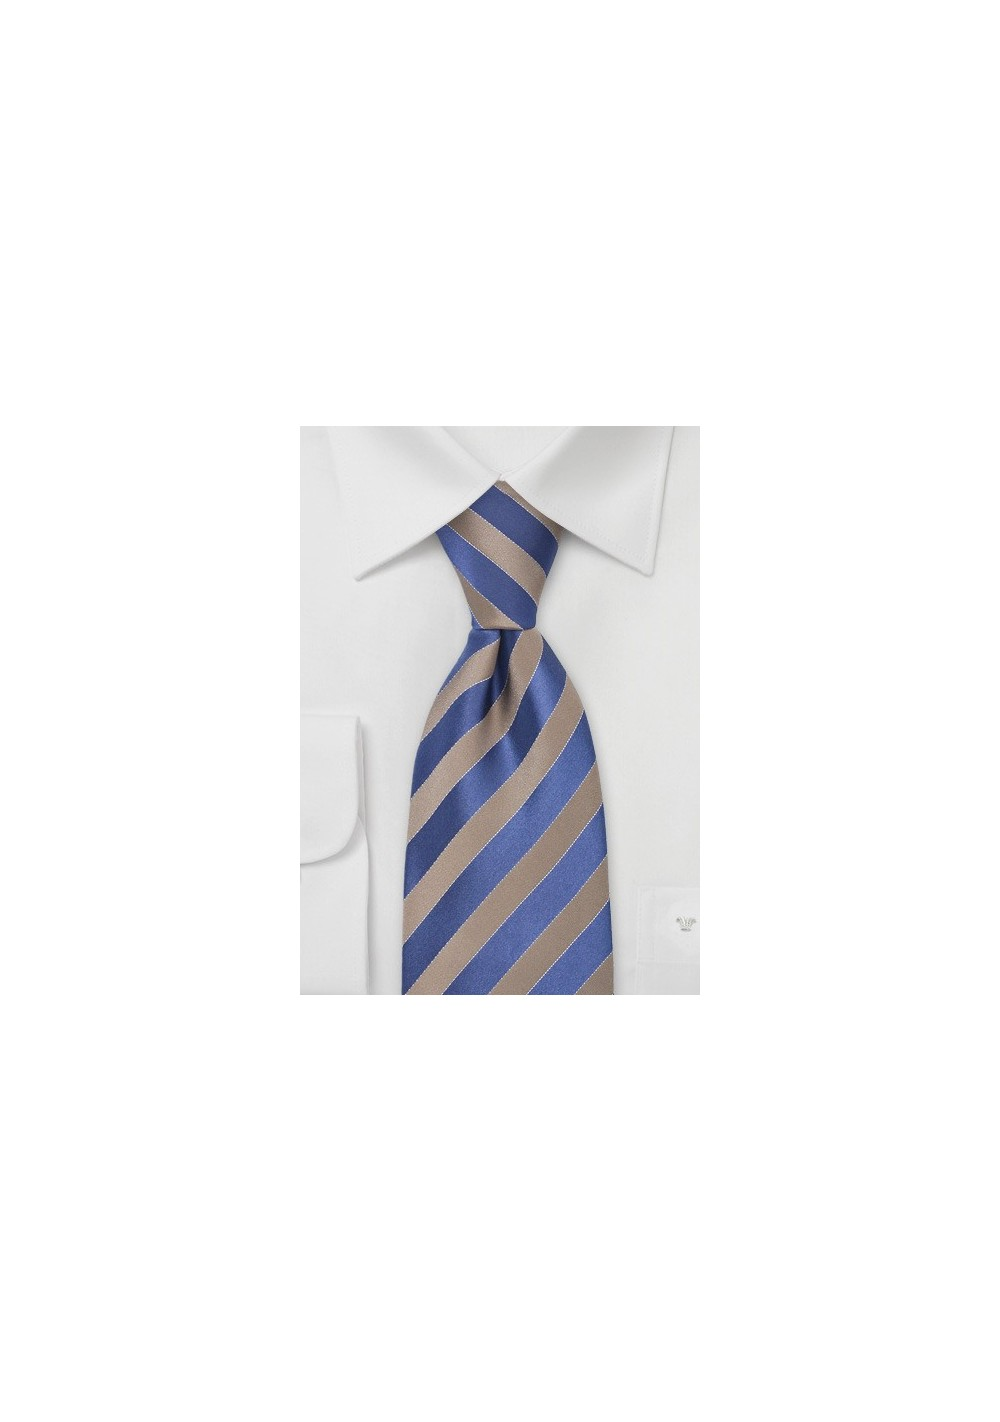 Bronze and Royal Blue Striped Tie